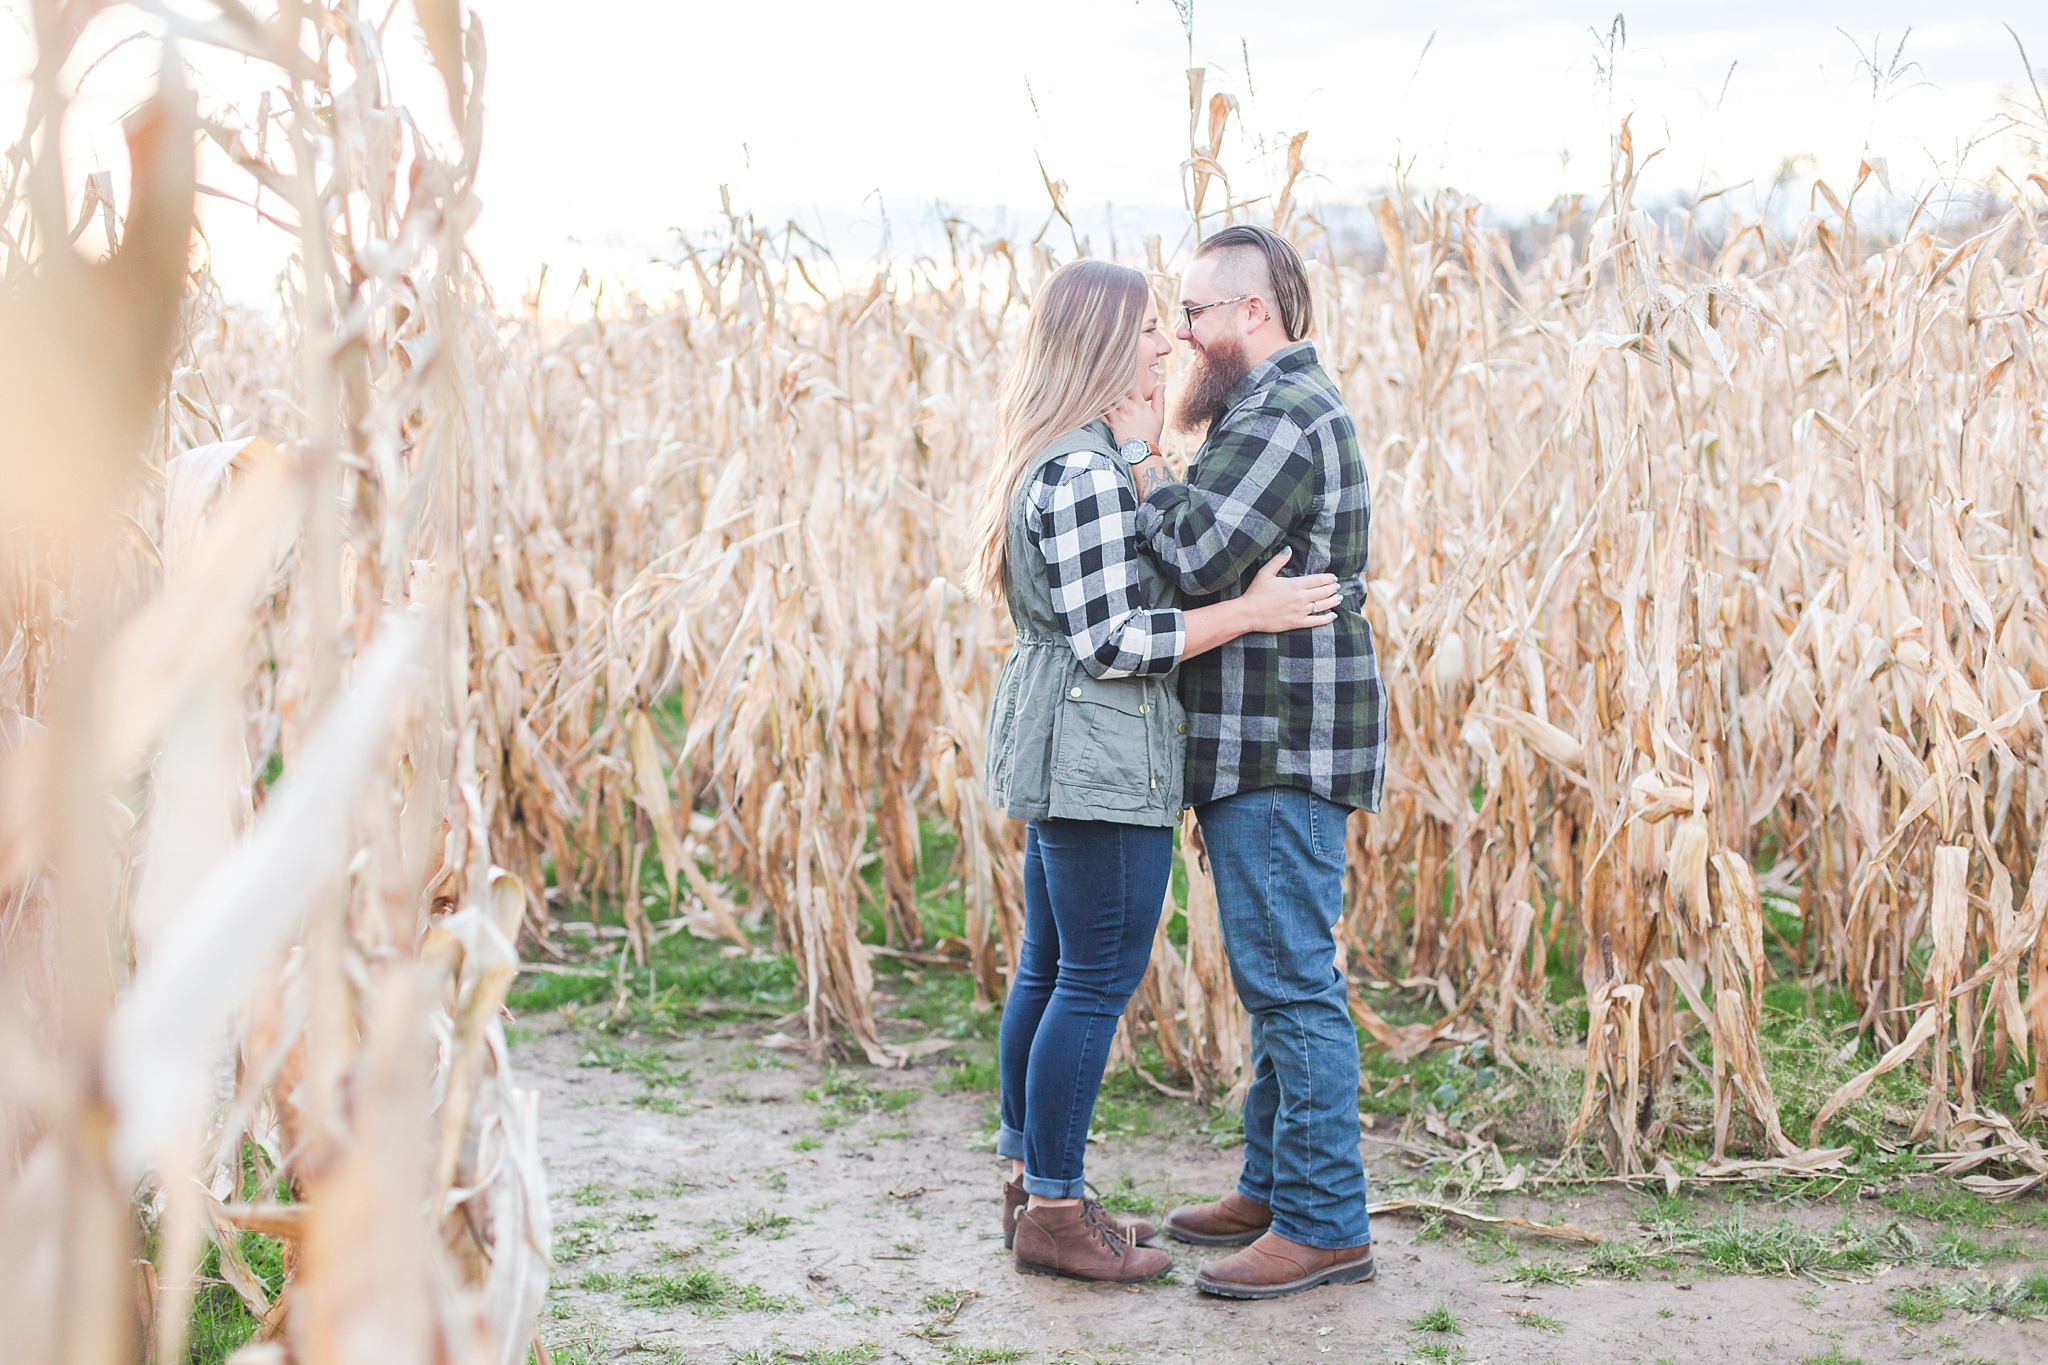 cozy-fall-engagement-photos-at-an-old-family-farm-in-monroe-michigan-by-courtney-carolyn-photography_0028.jpg